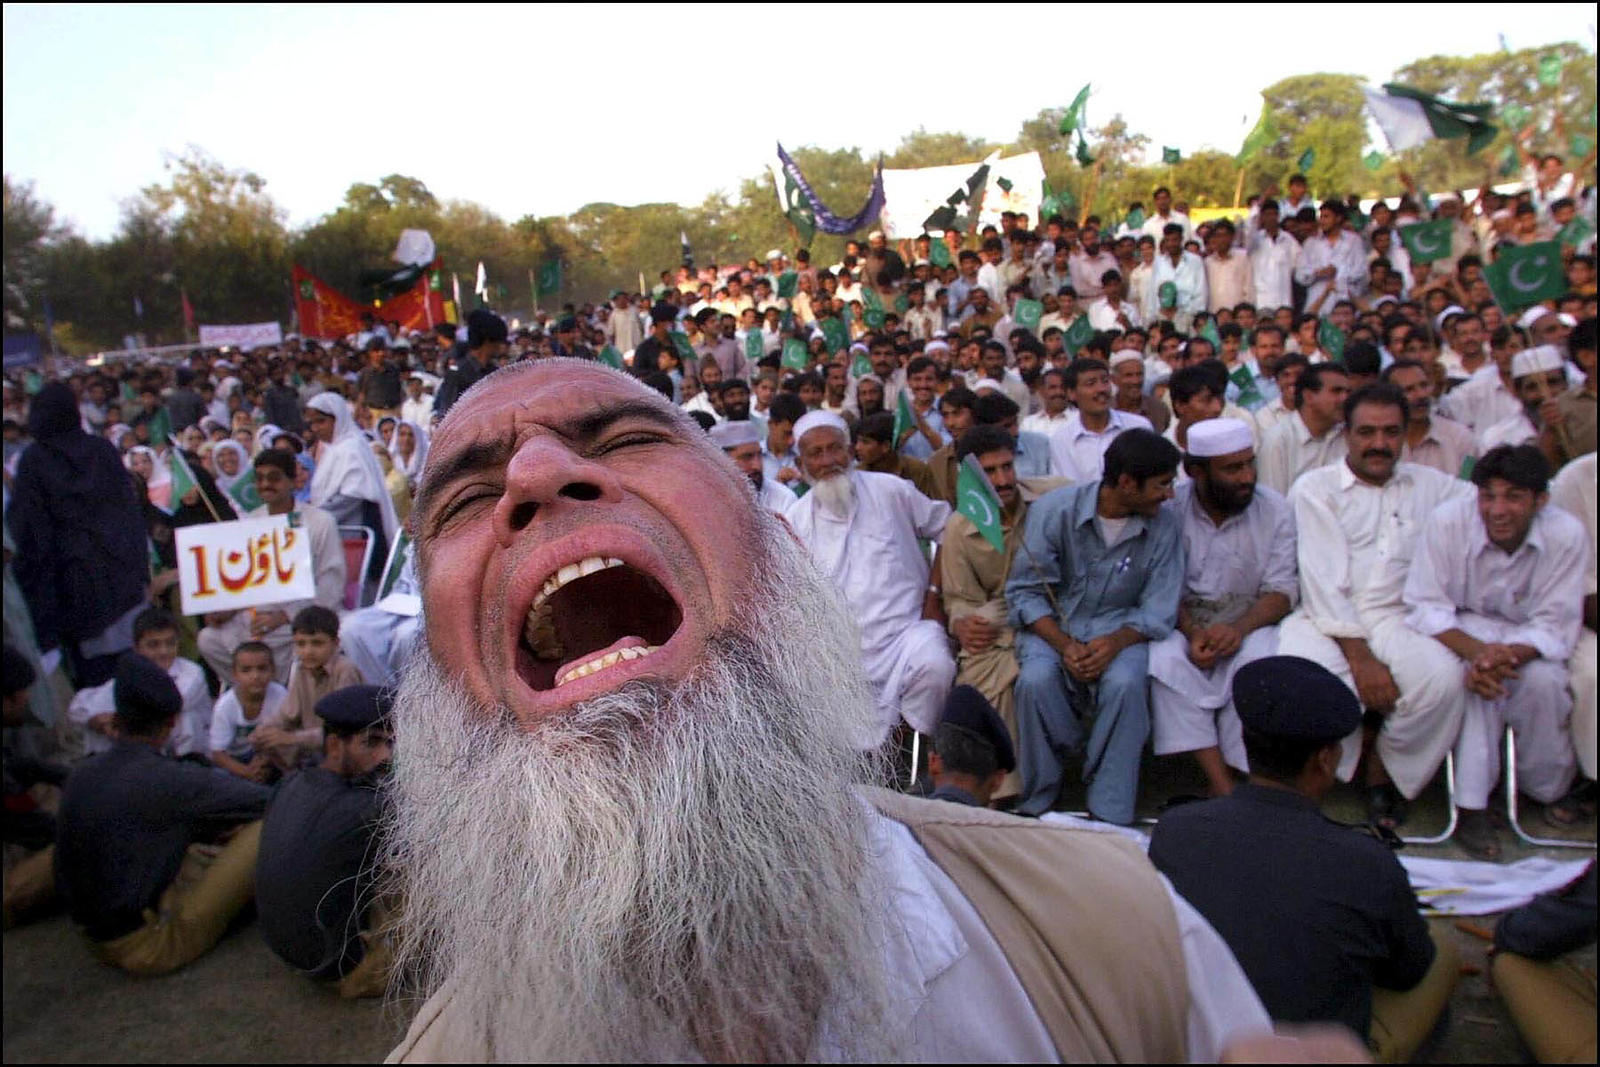 2001 pro-government rally in Peshawar, Pakistan